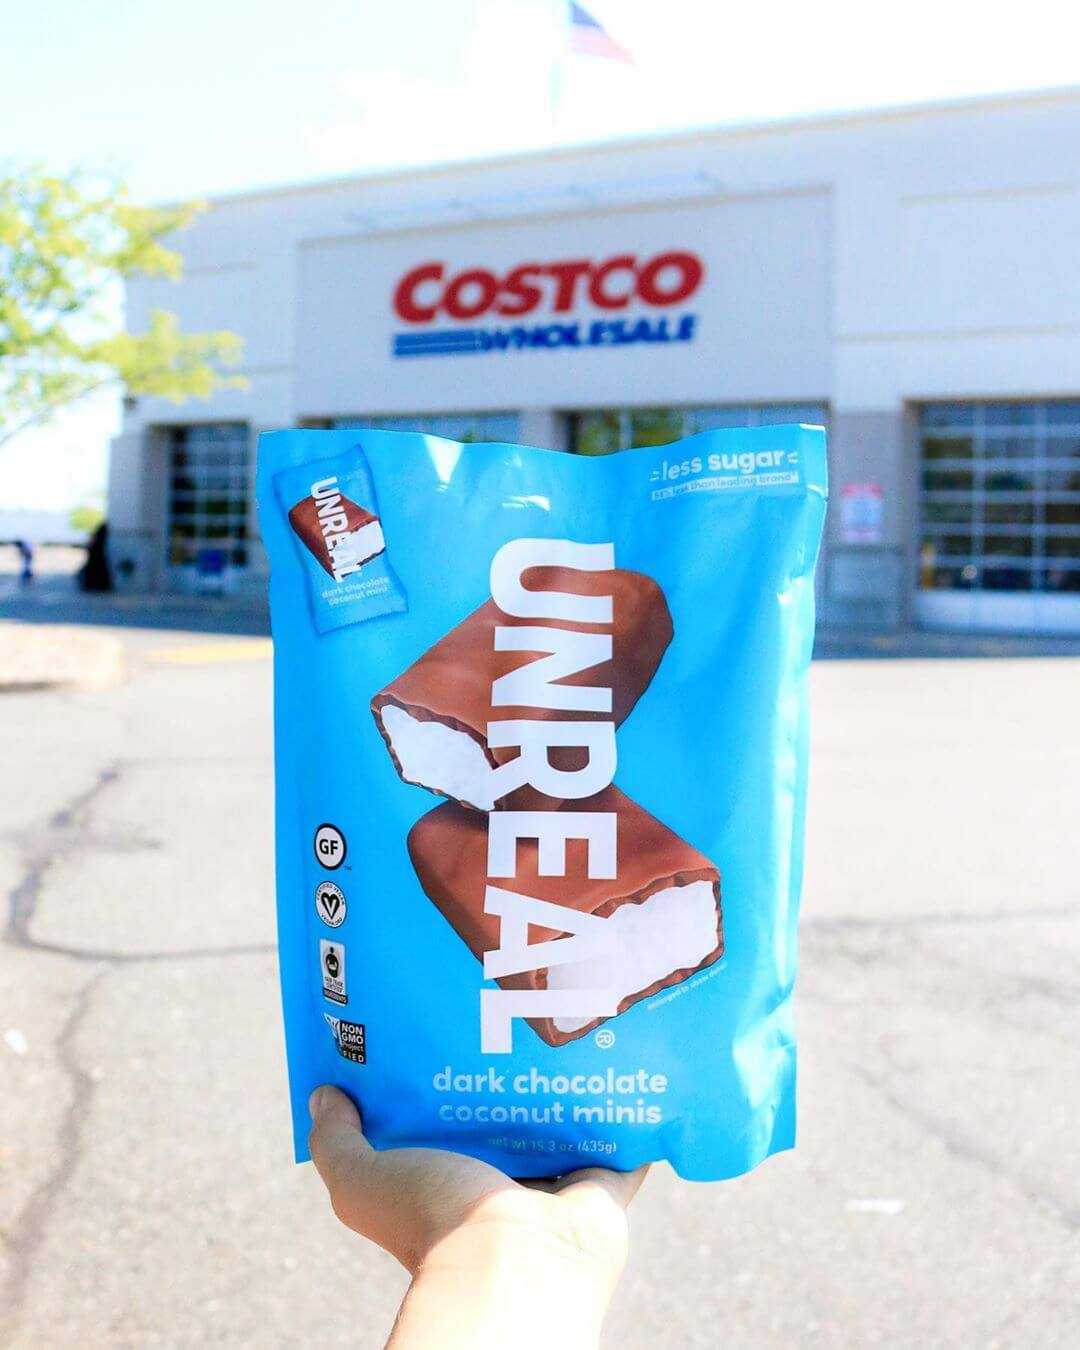 Costco Launches Vegan Bounty Chocolate Bars Livekindly